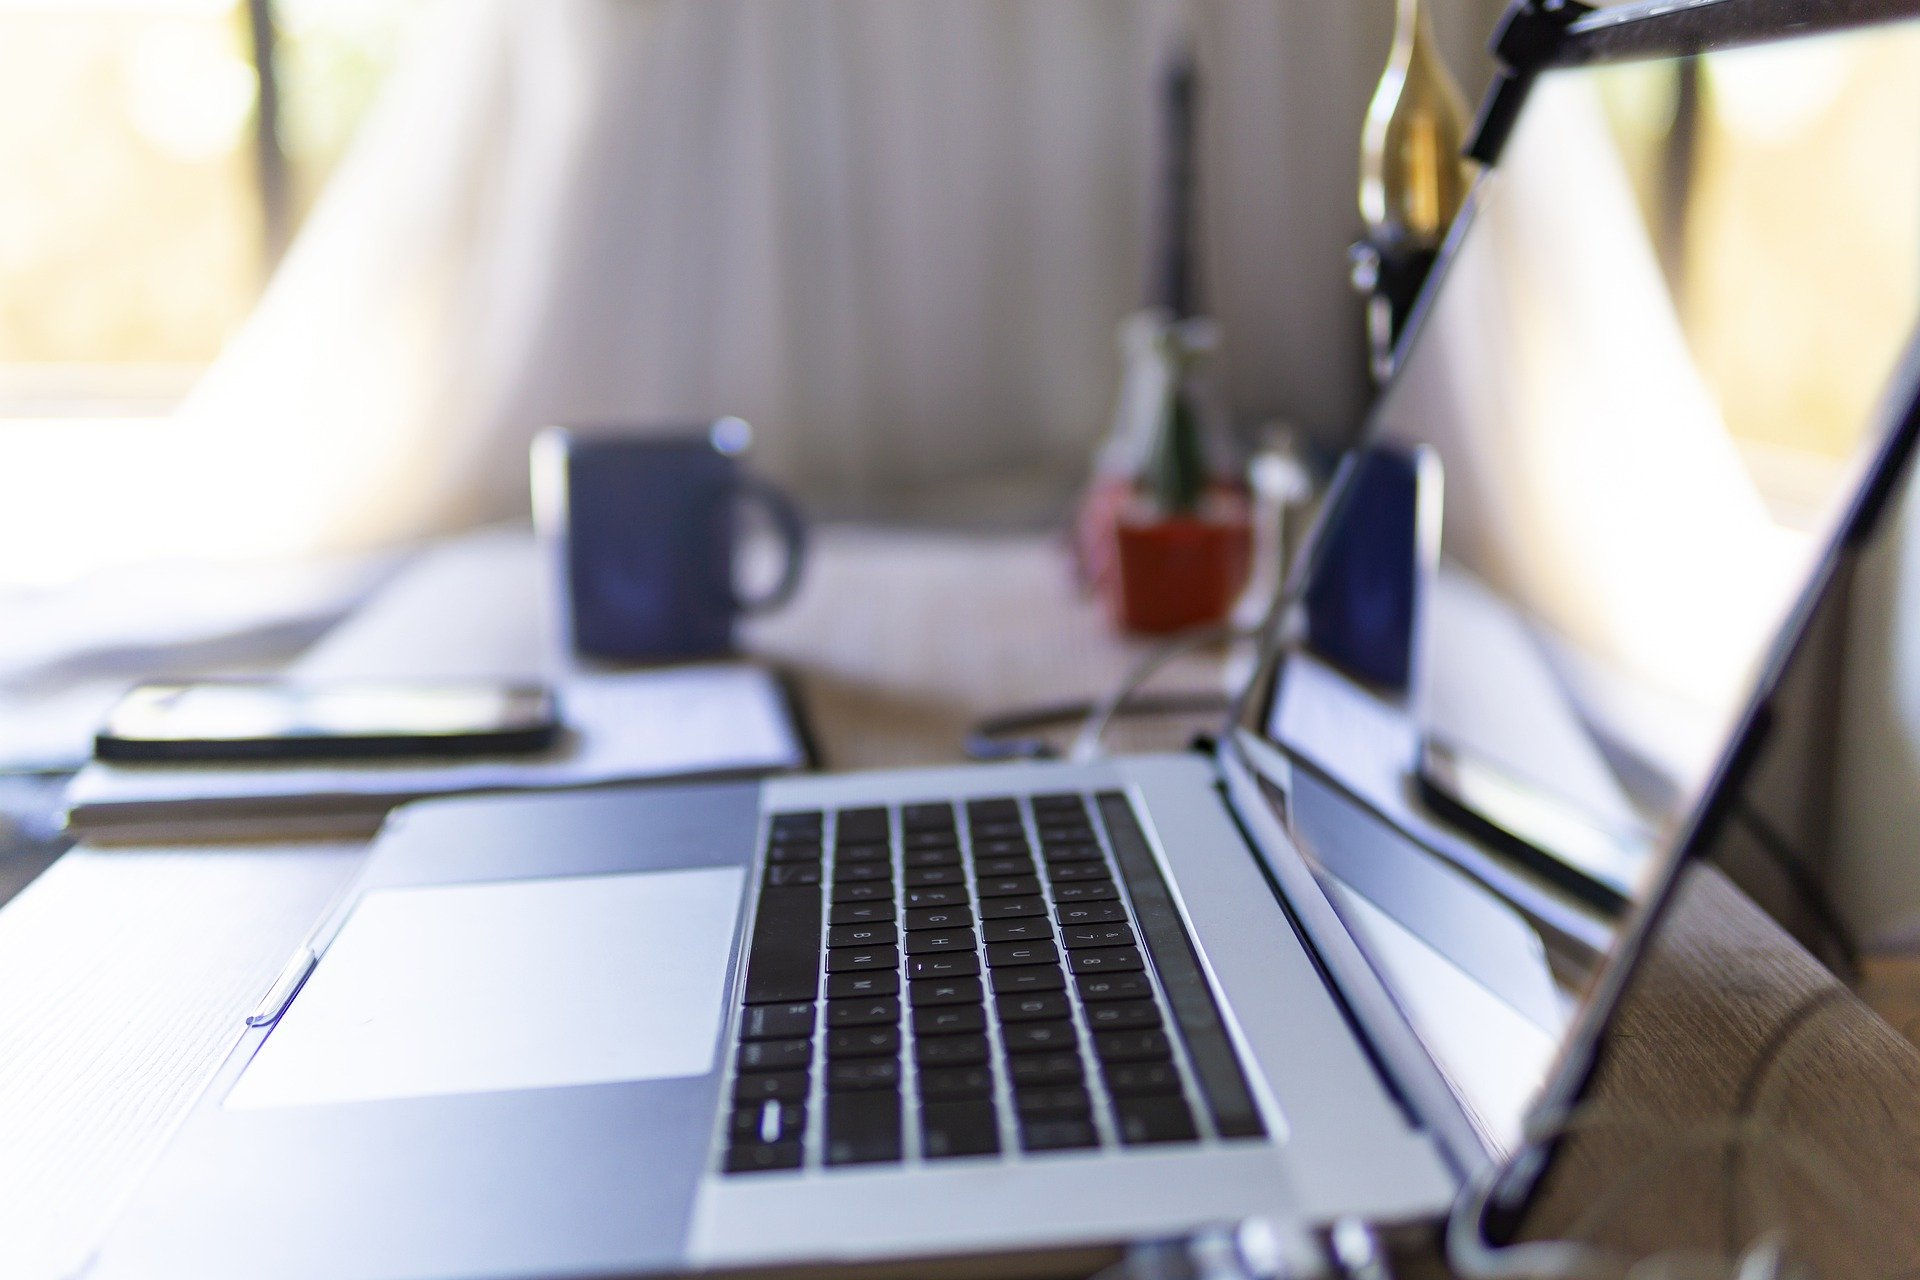 WAN Managers Reflect on COVID-19 Challenges, Strategies for Moving to Remote Work